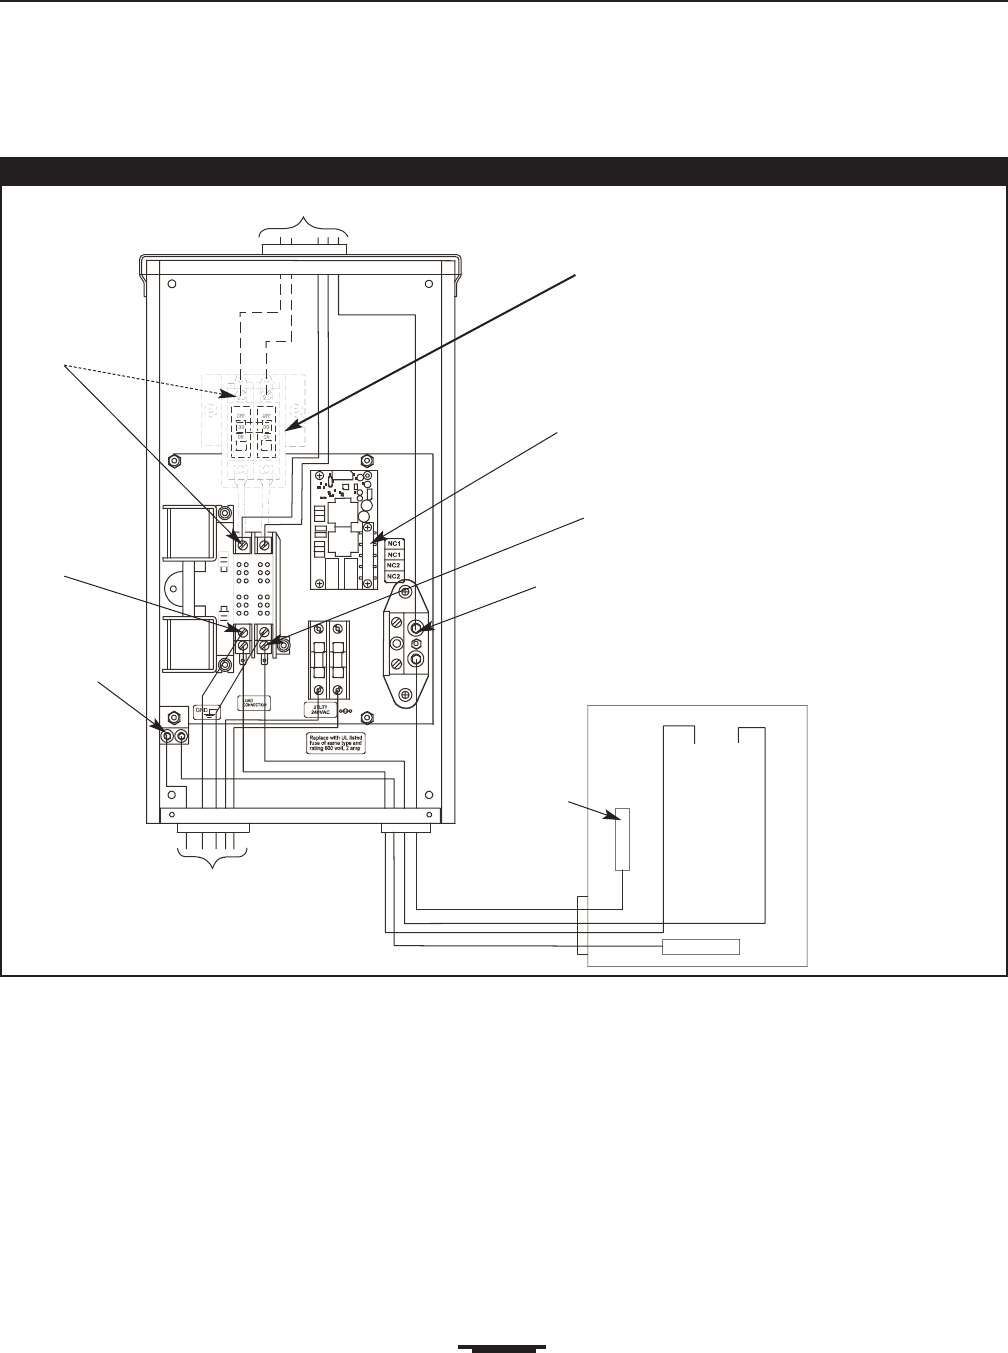 [SCHEMATICS_4LK]  Briggs & Stratton 01813-1, 01814-1, 01928-1, 01929-1 Briggs & Stratton  Power Products Automatic Transfer Switch Installation and Operators Manual | Briggs And Stratton Transfer Switch Wiring Diagram |  | Manuals